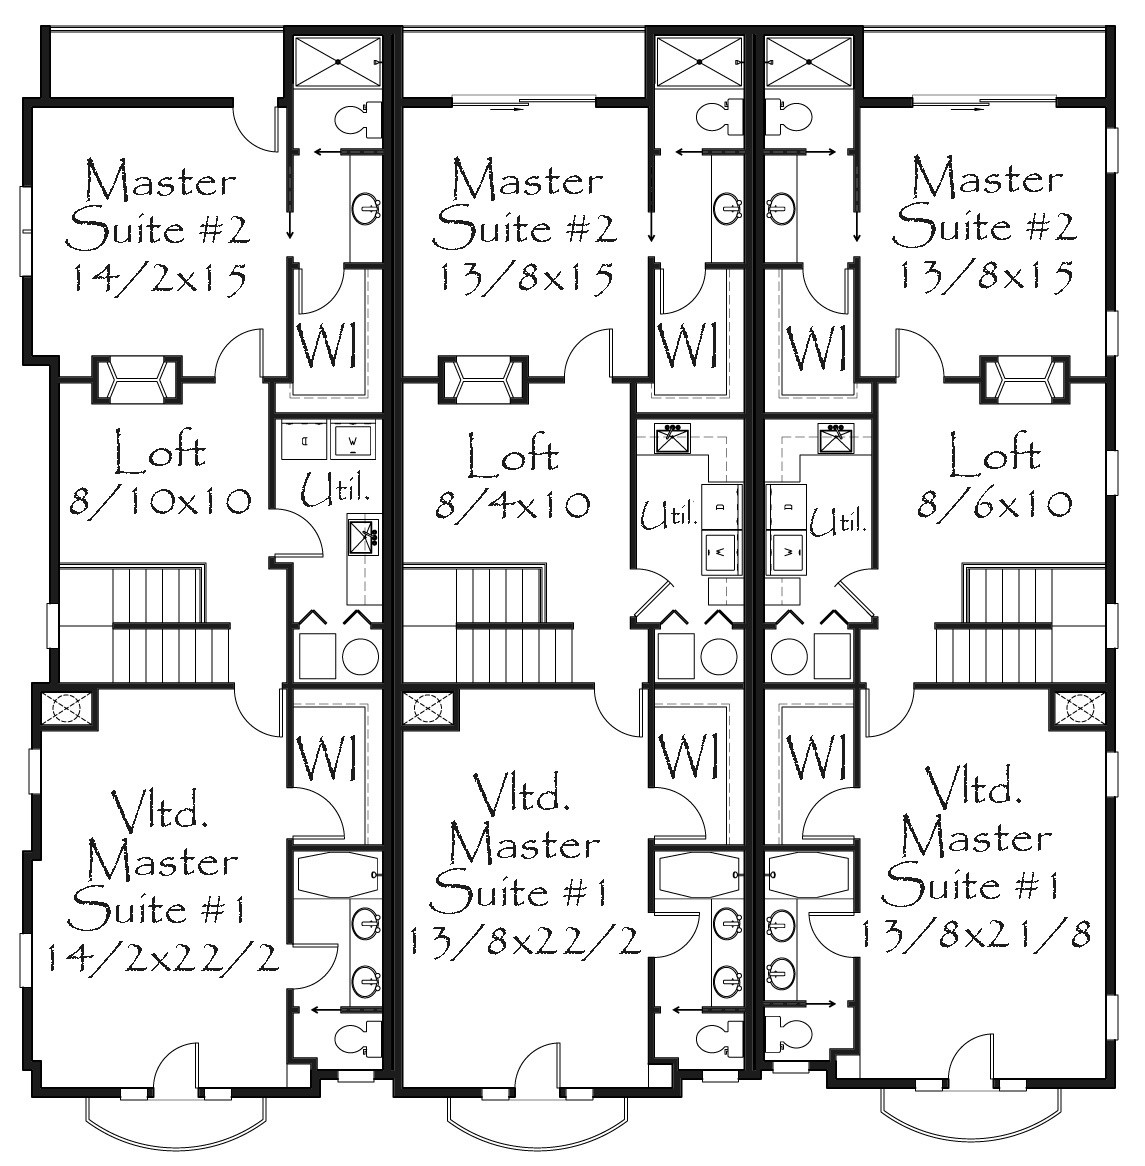 4500 Square Feet Tropical House On A Very Small Lot But: Old World European Style House Plans